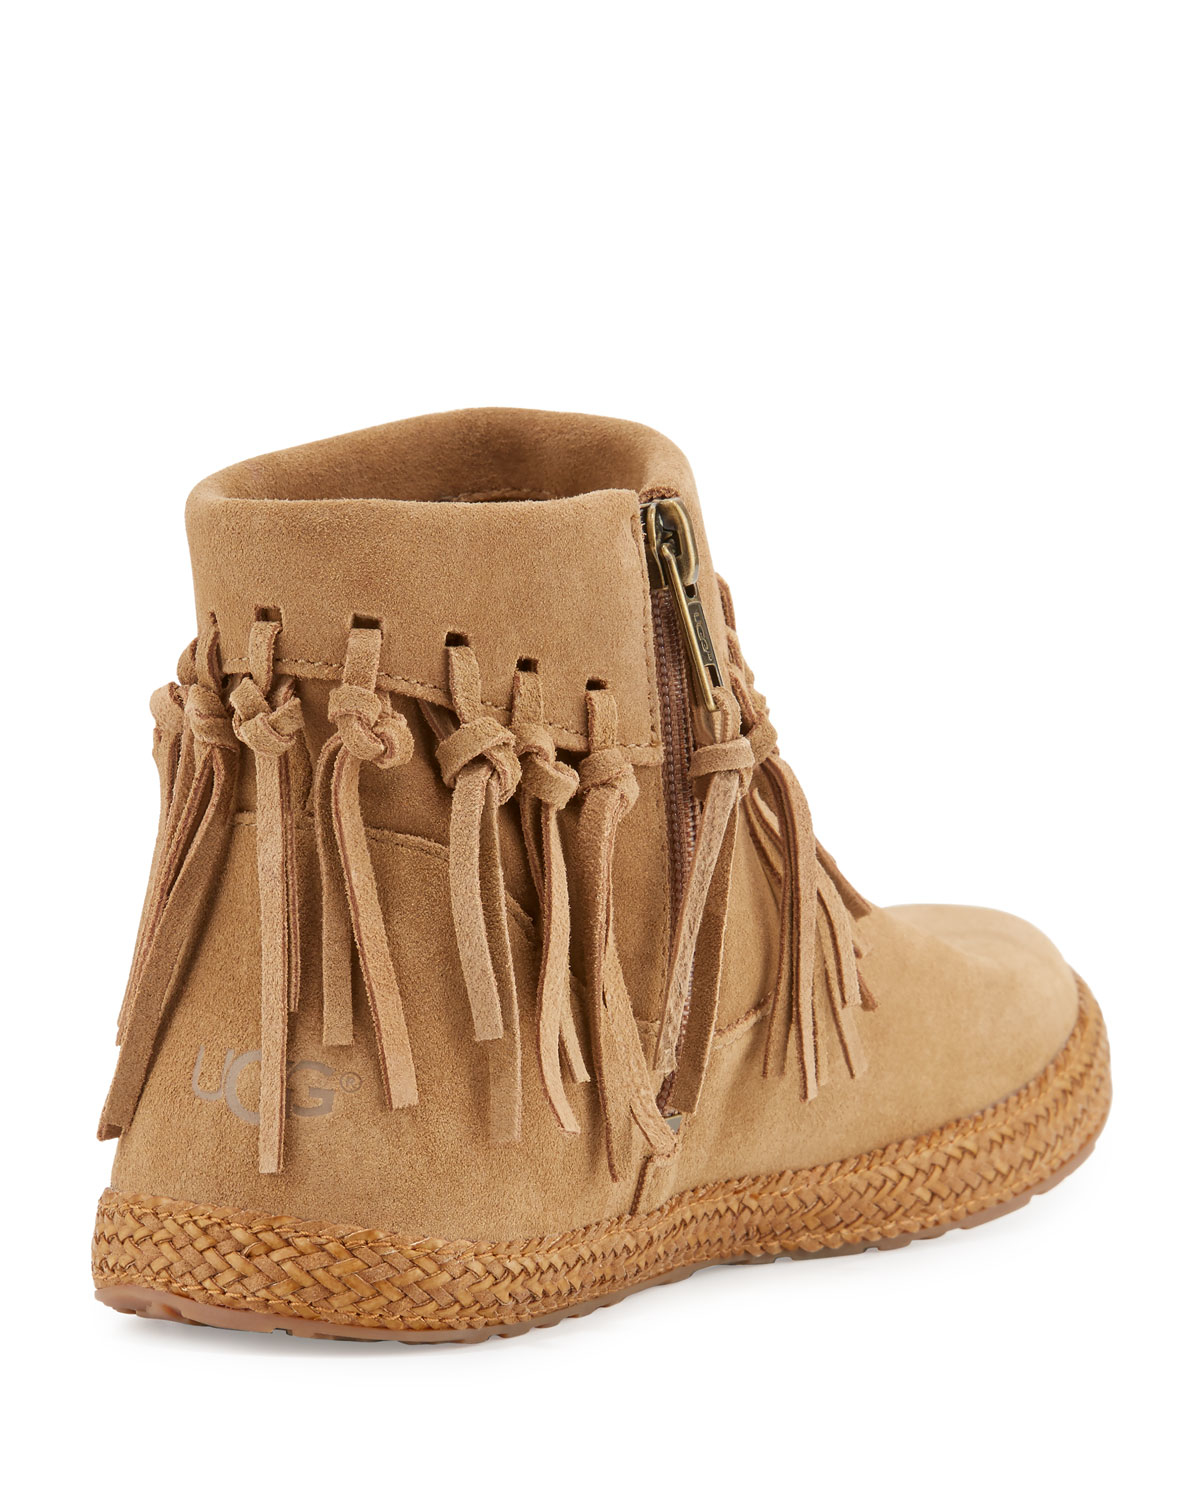 buy ugg slippers ireland